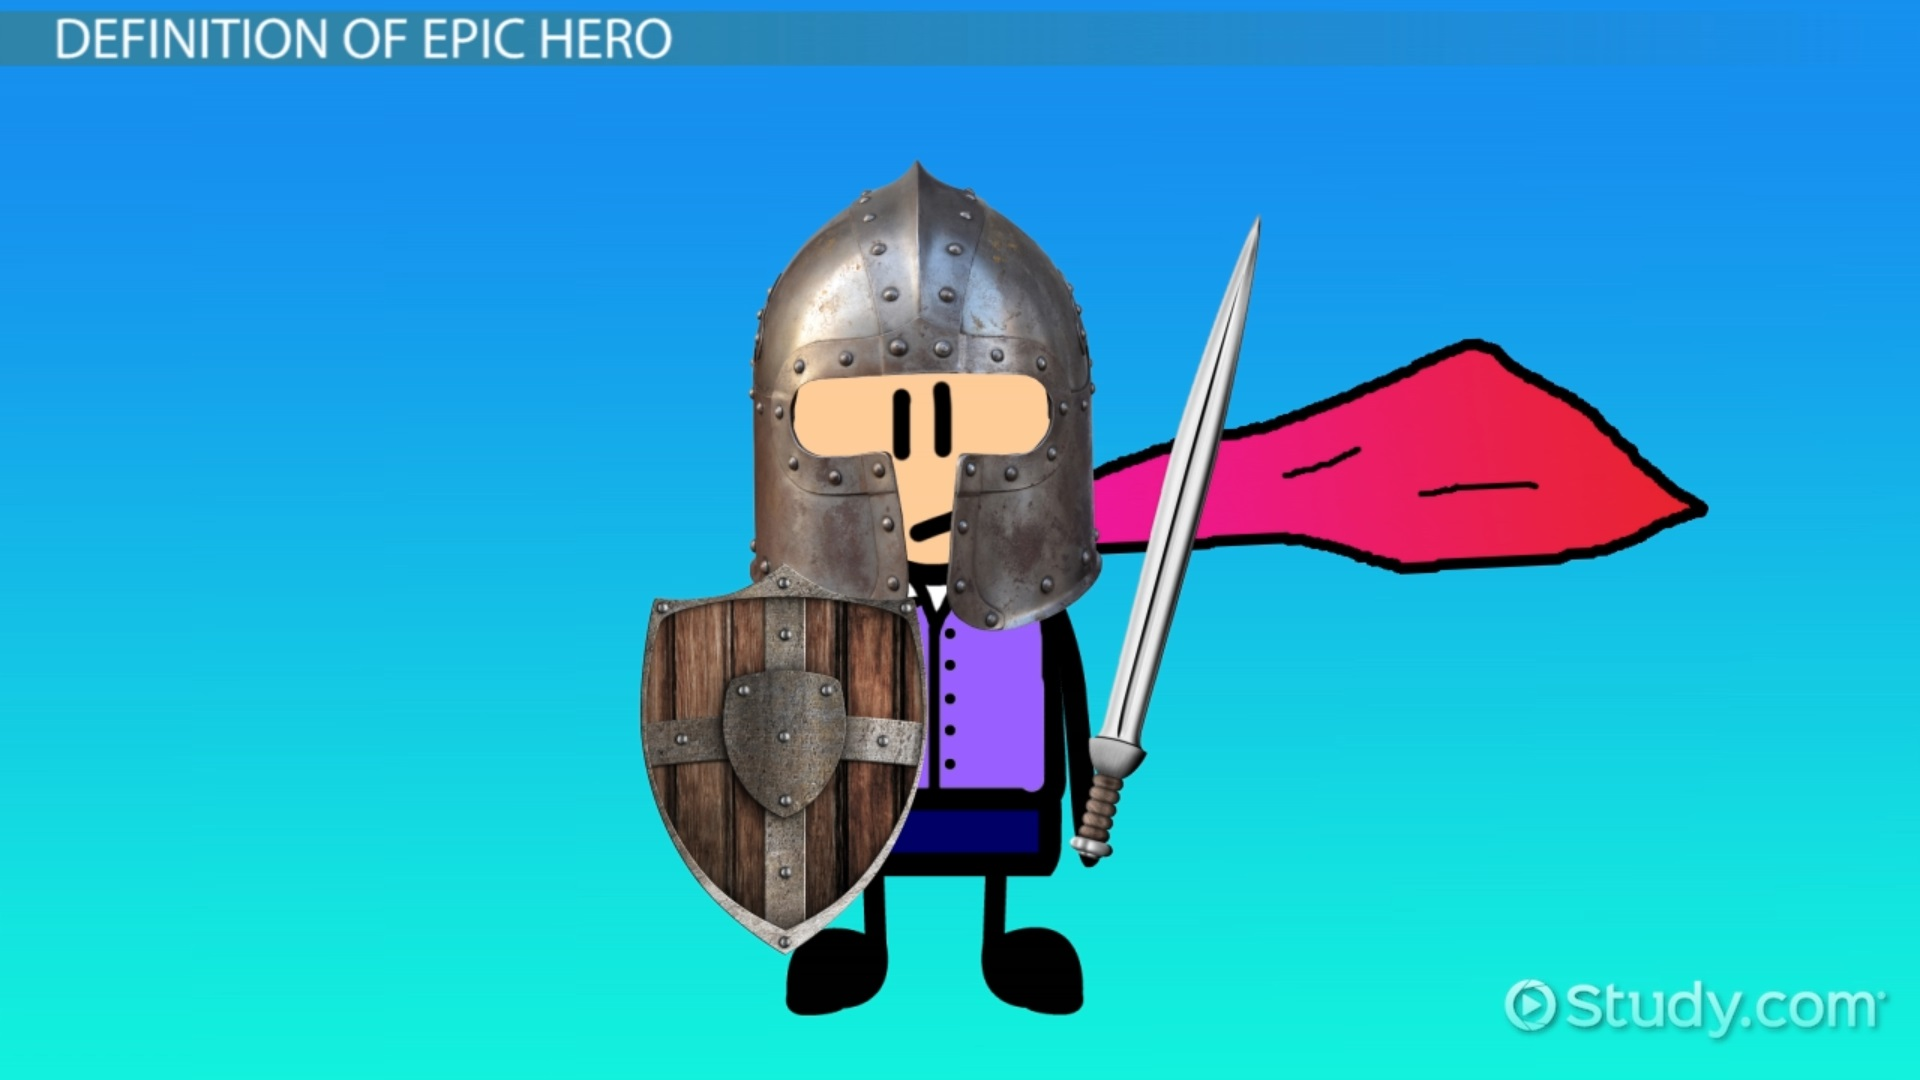 Beowulf as an epic hero in